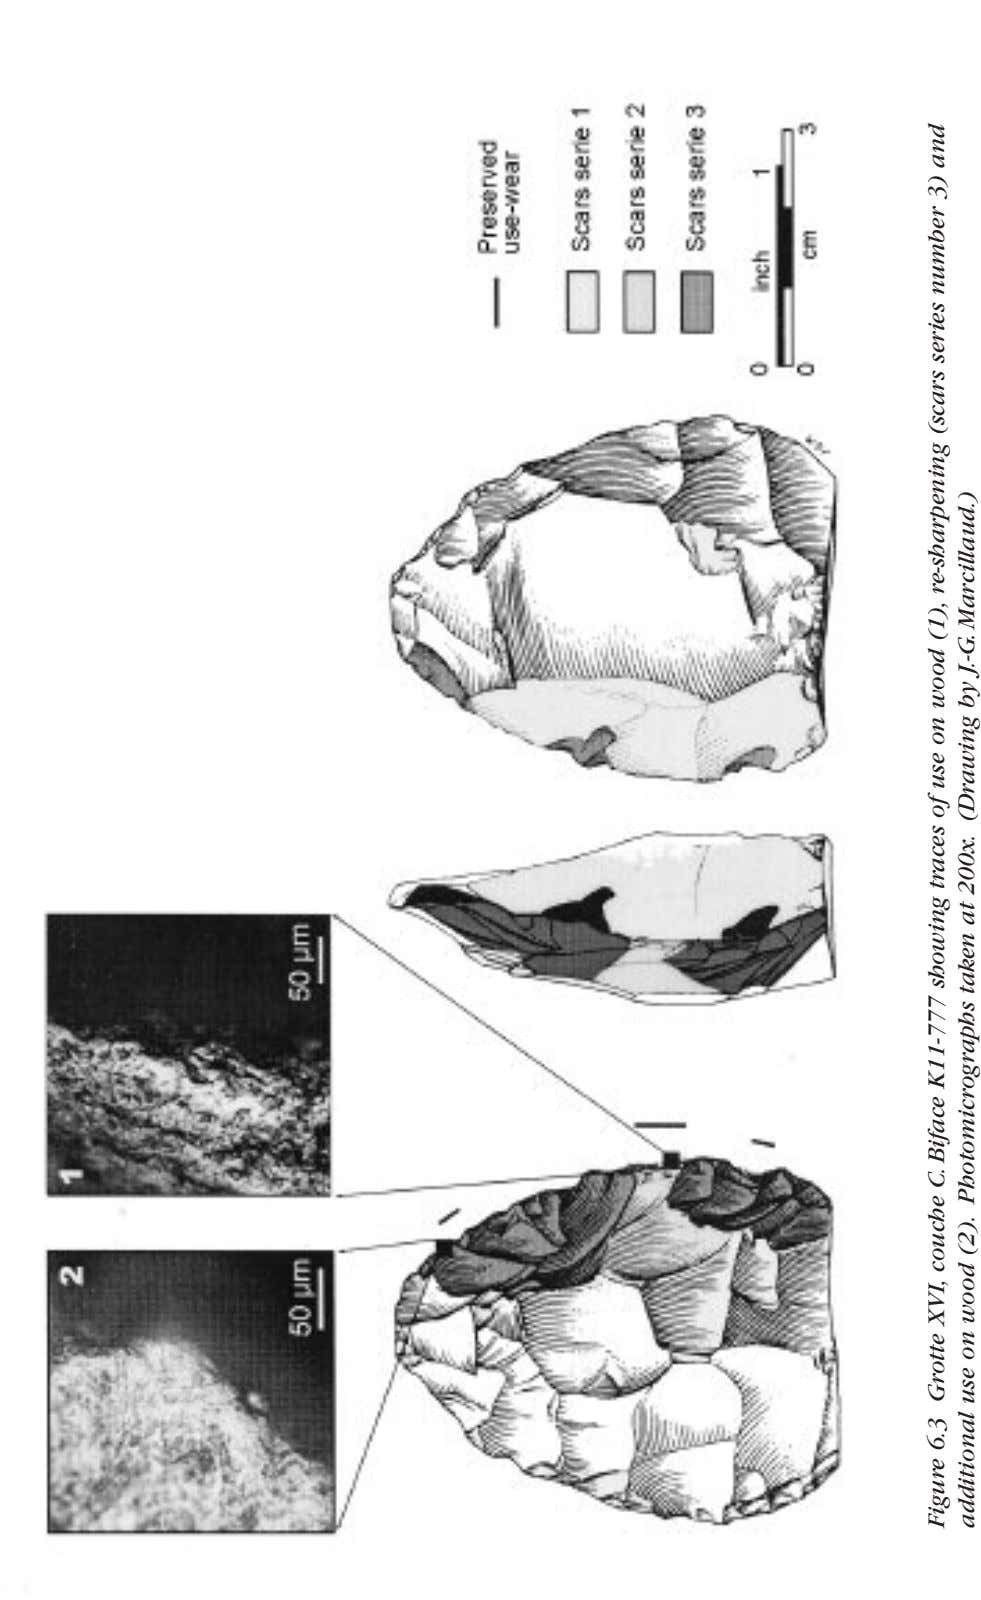 Figure 6.3 Grotte XVI, couche C. Biface K11-777 showing traces of use on wood (1),